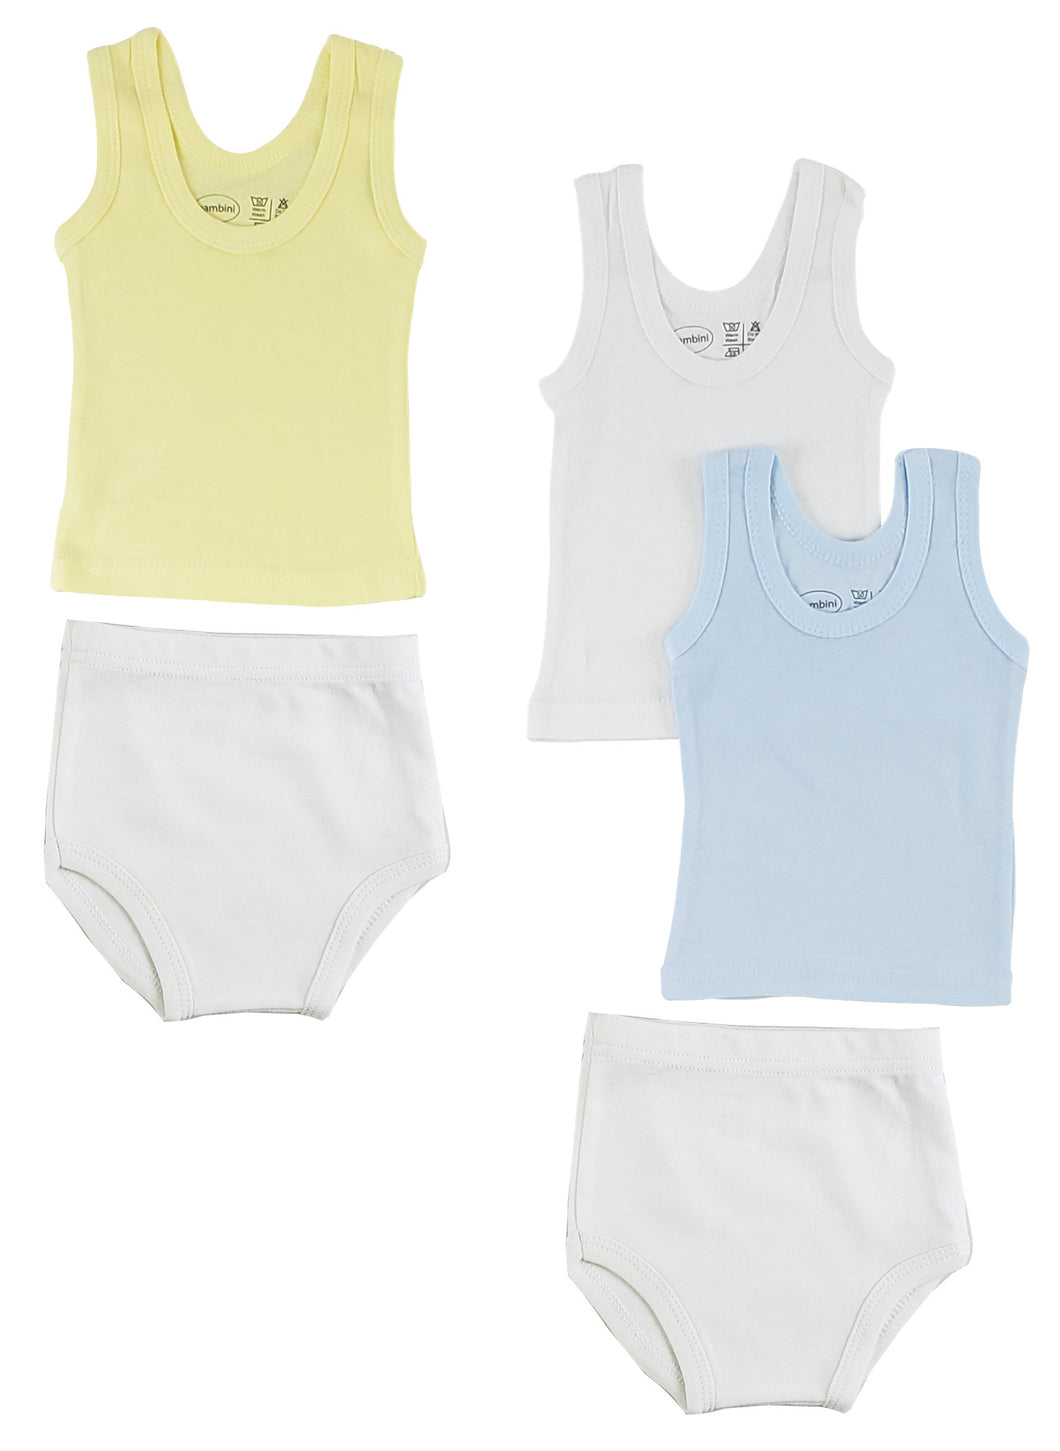 Boys Tank Tops And Training Pants